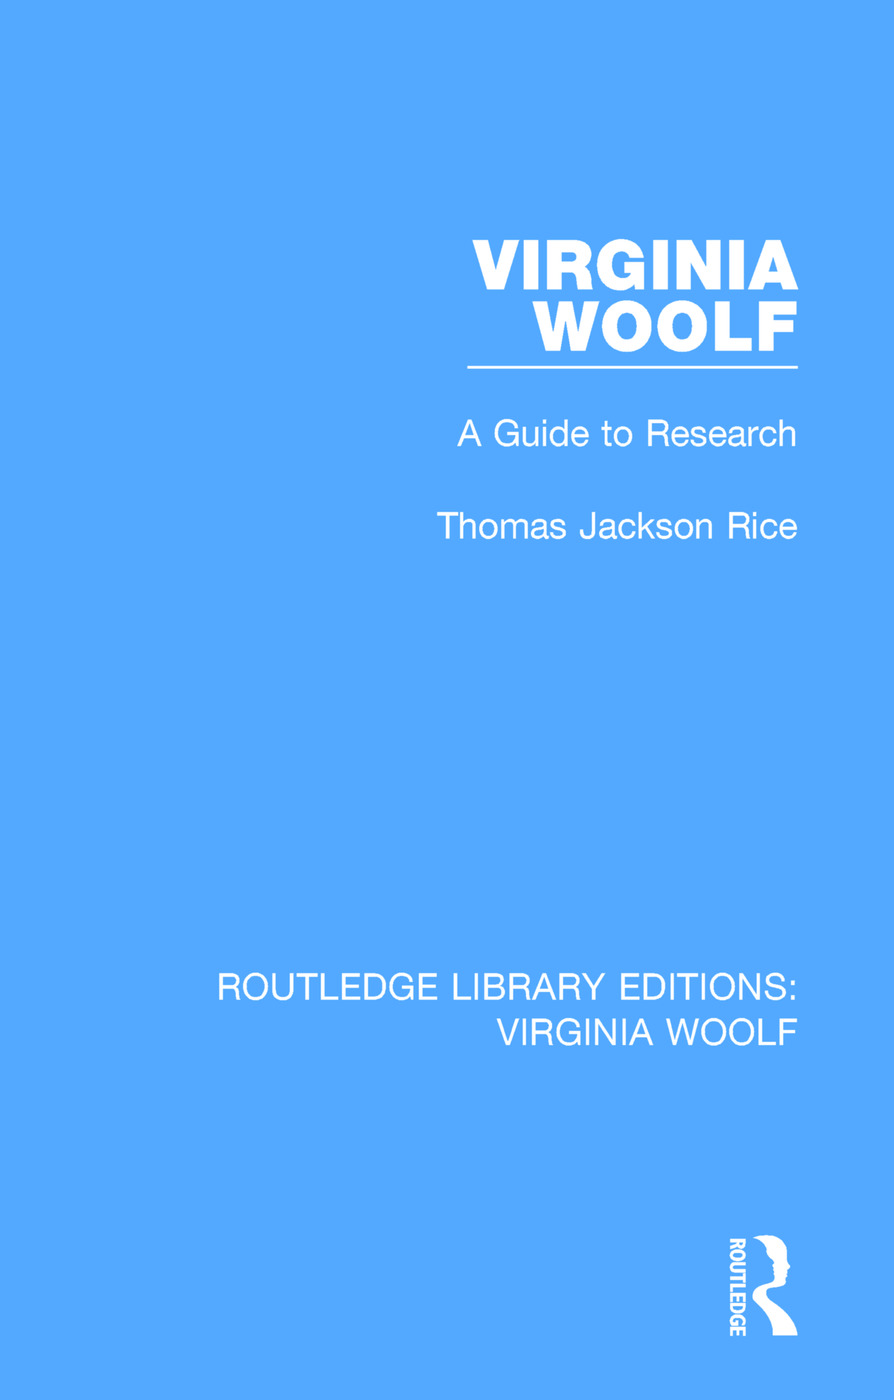 Virginia Woolf: A Guide to Research book cover